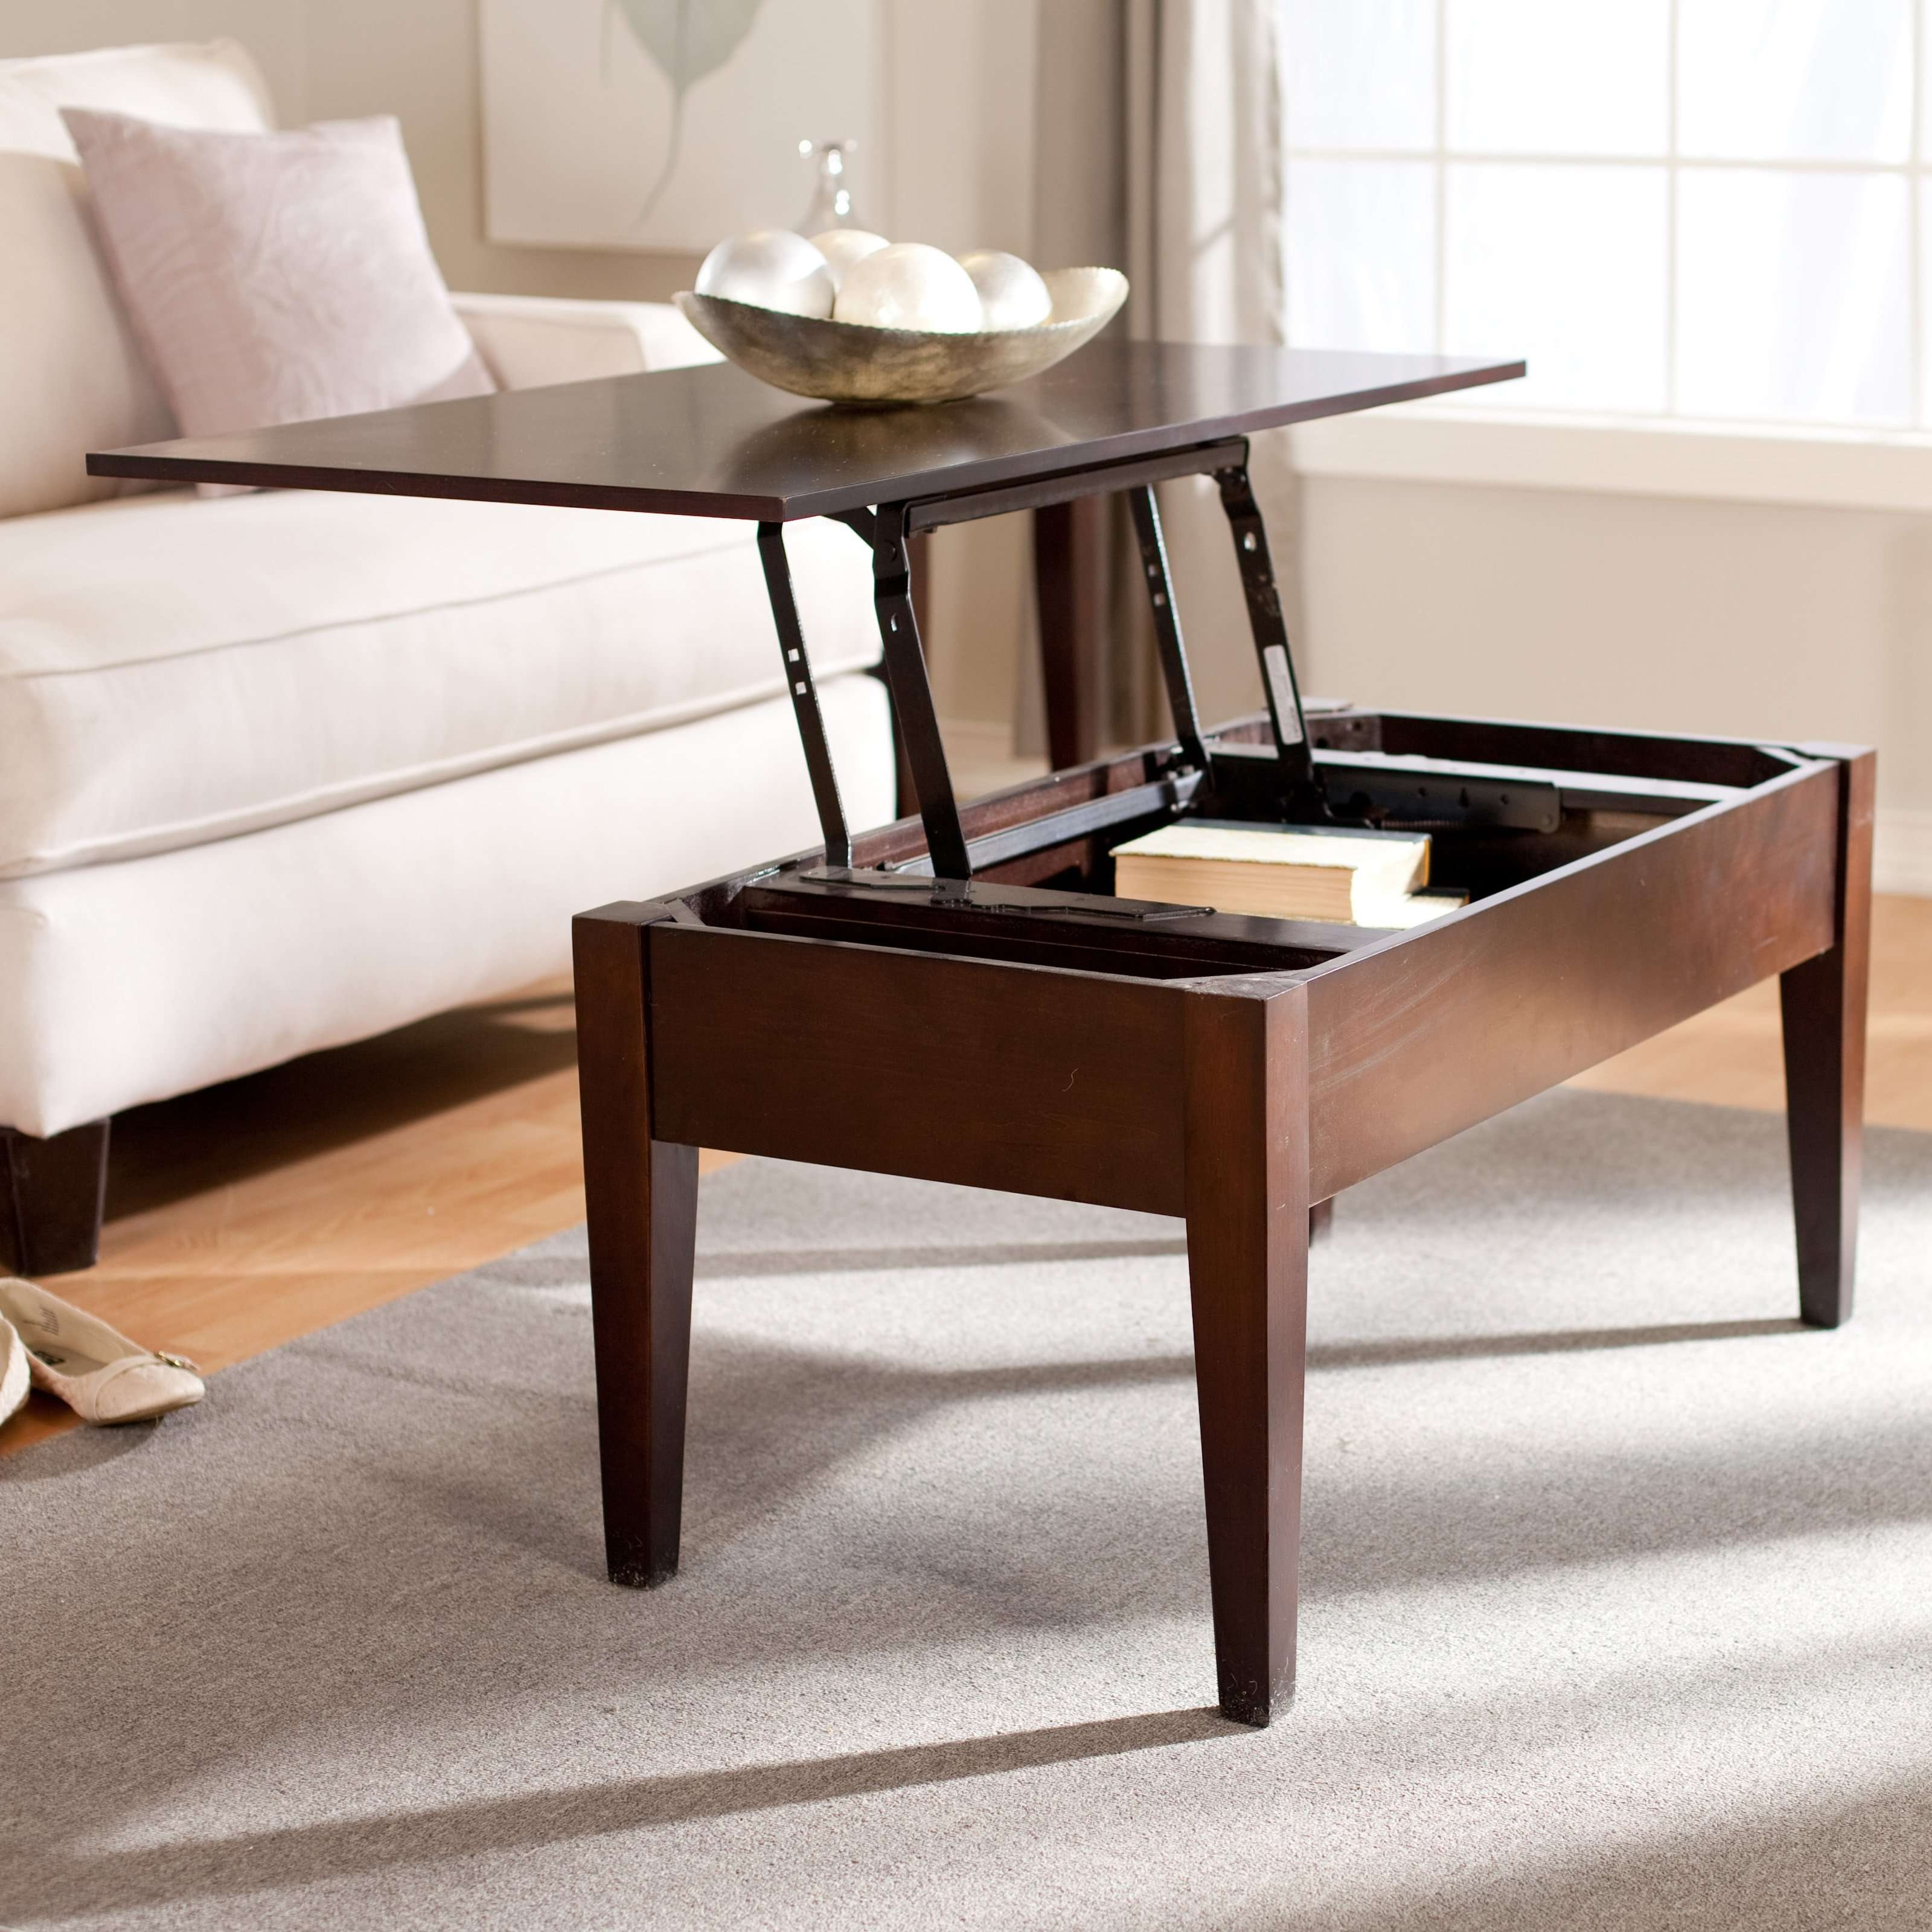 Widely Used Lift Top Oak Coffee Tables Inside Turner Lift Top Coffee Table – Espresso (View 7 of 20)